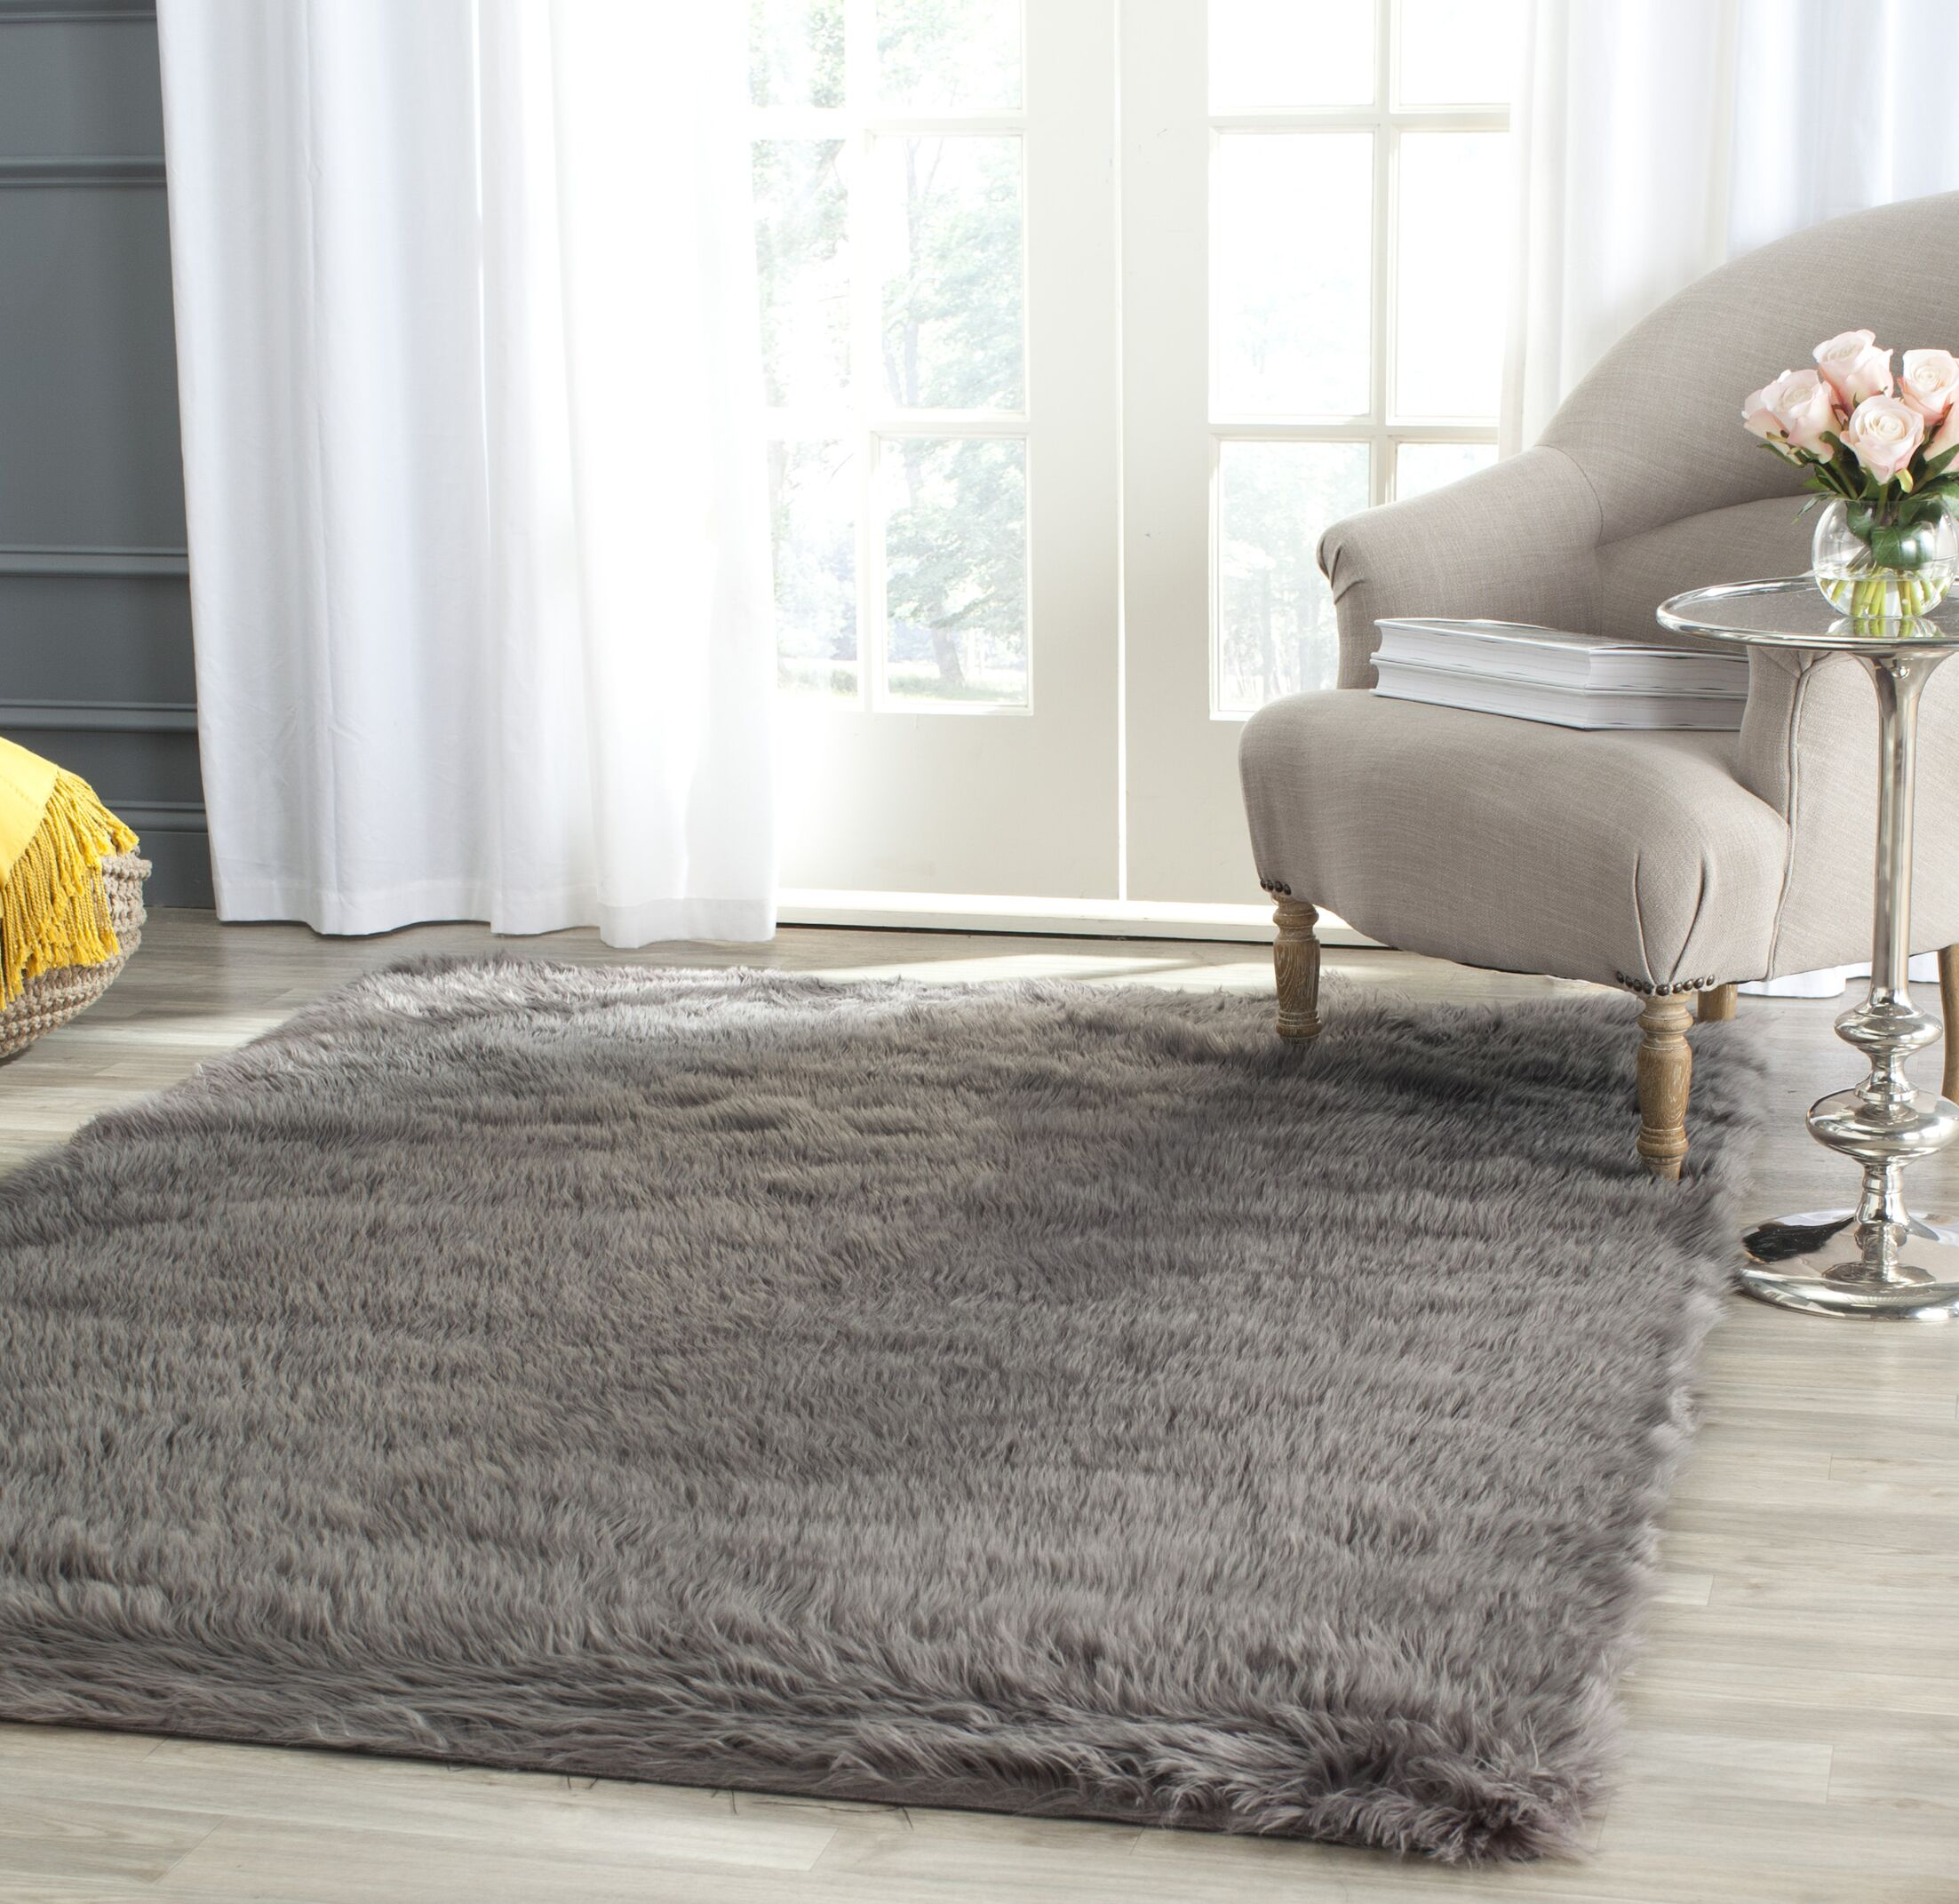 Nichols Hand-Tufted Gray Area Rug Rug Size: Rectangle 5' x 7'